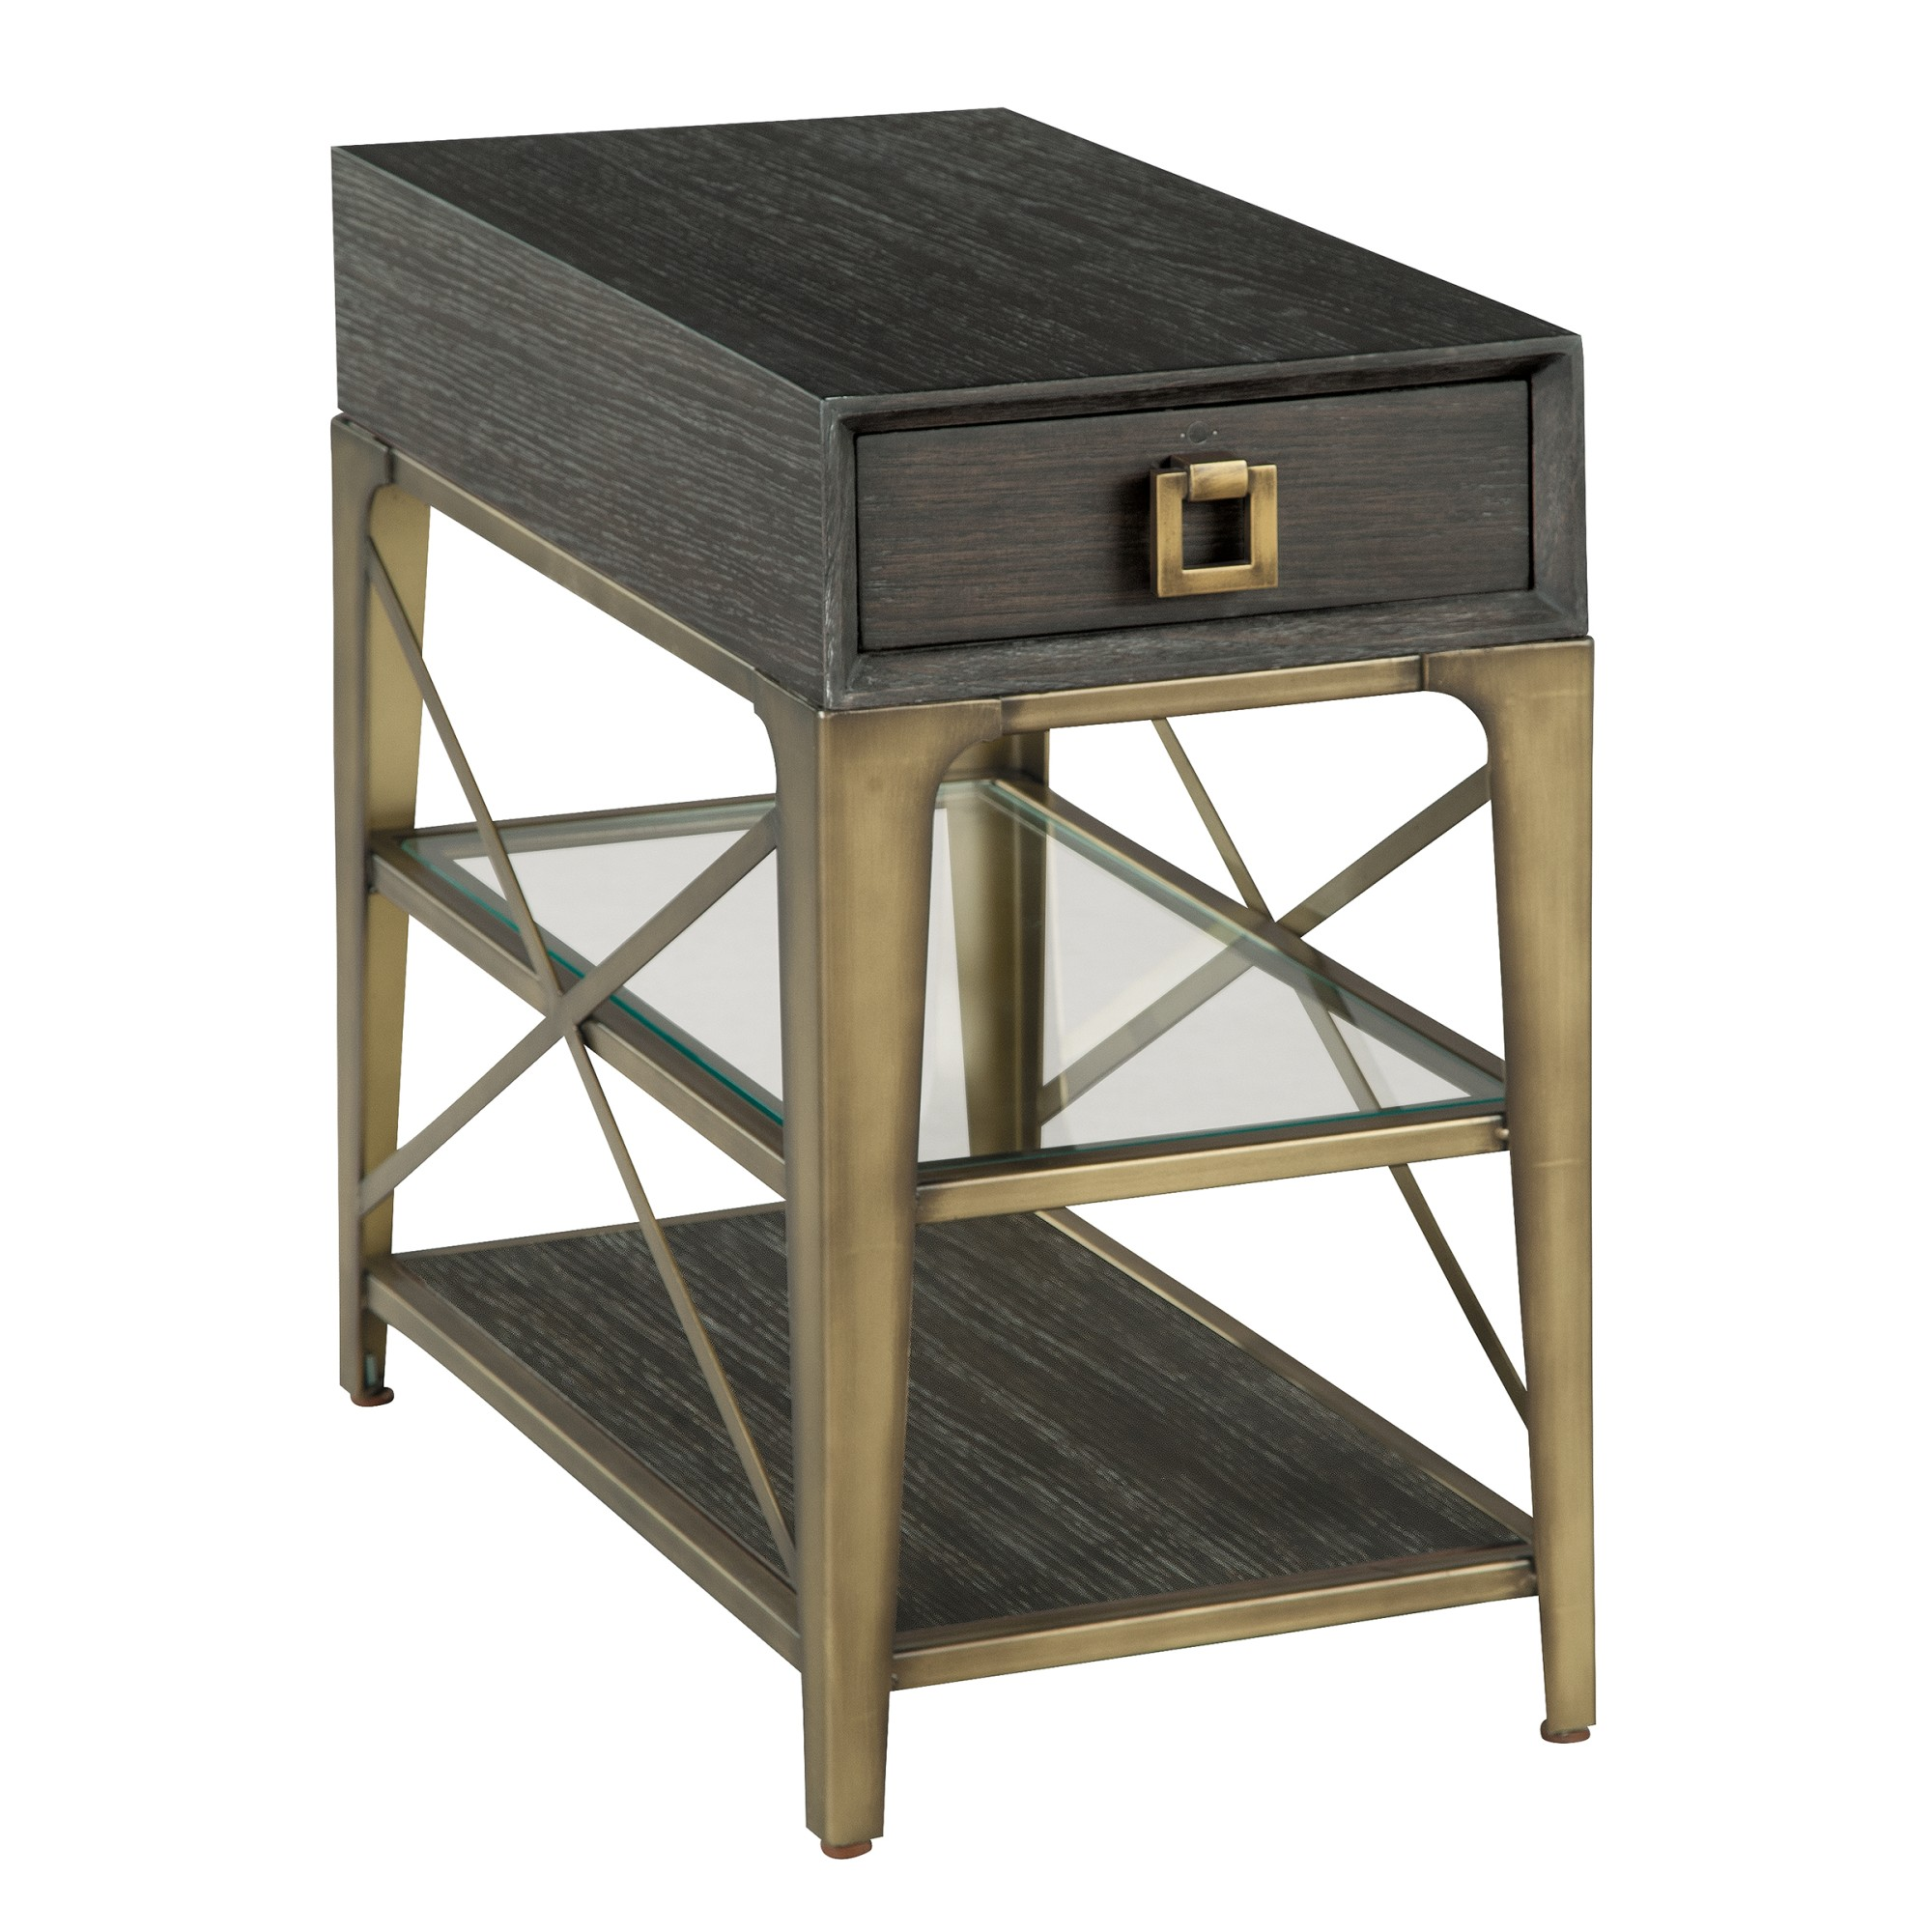 Image for 2-3807 Edgewater Lamp Table with Drawer from Hekman Official Website